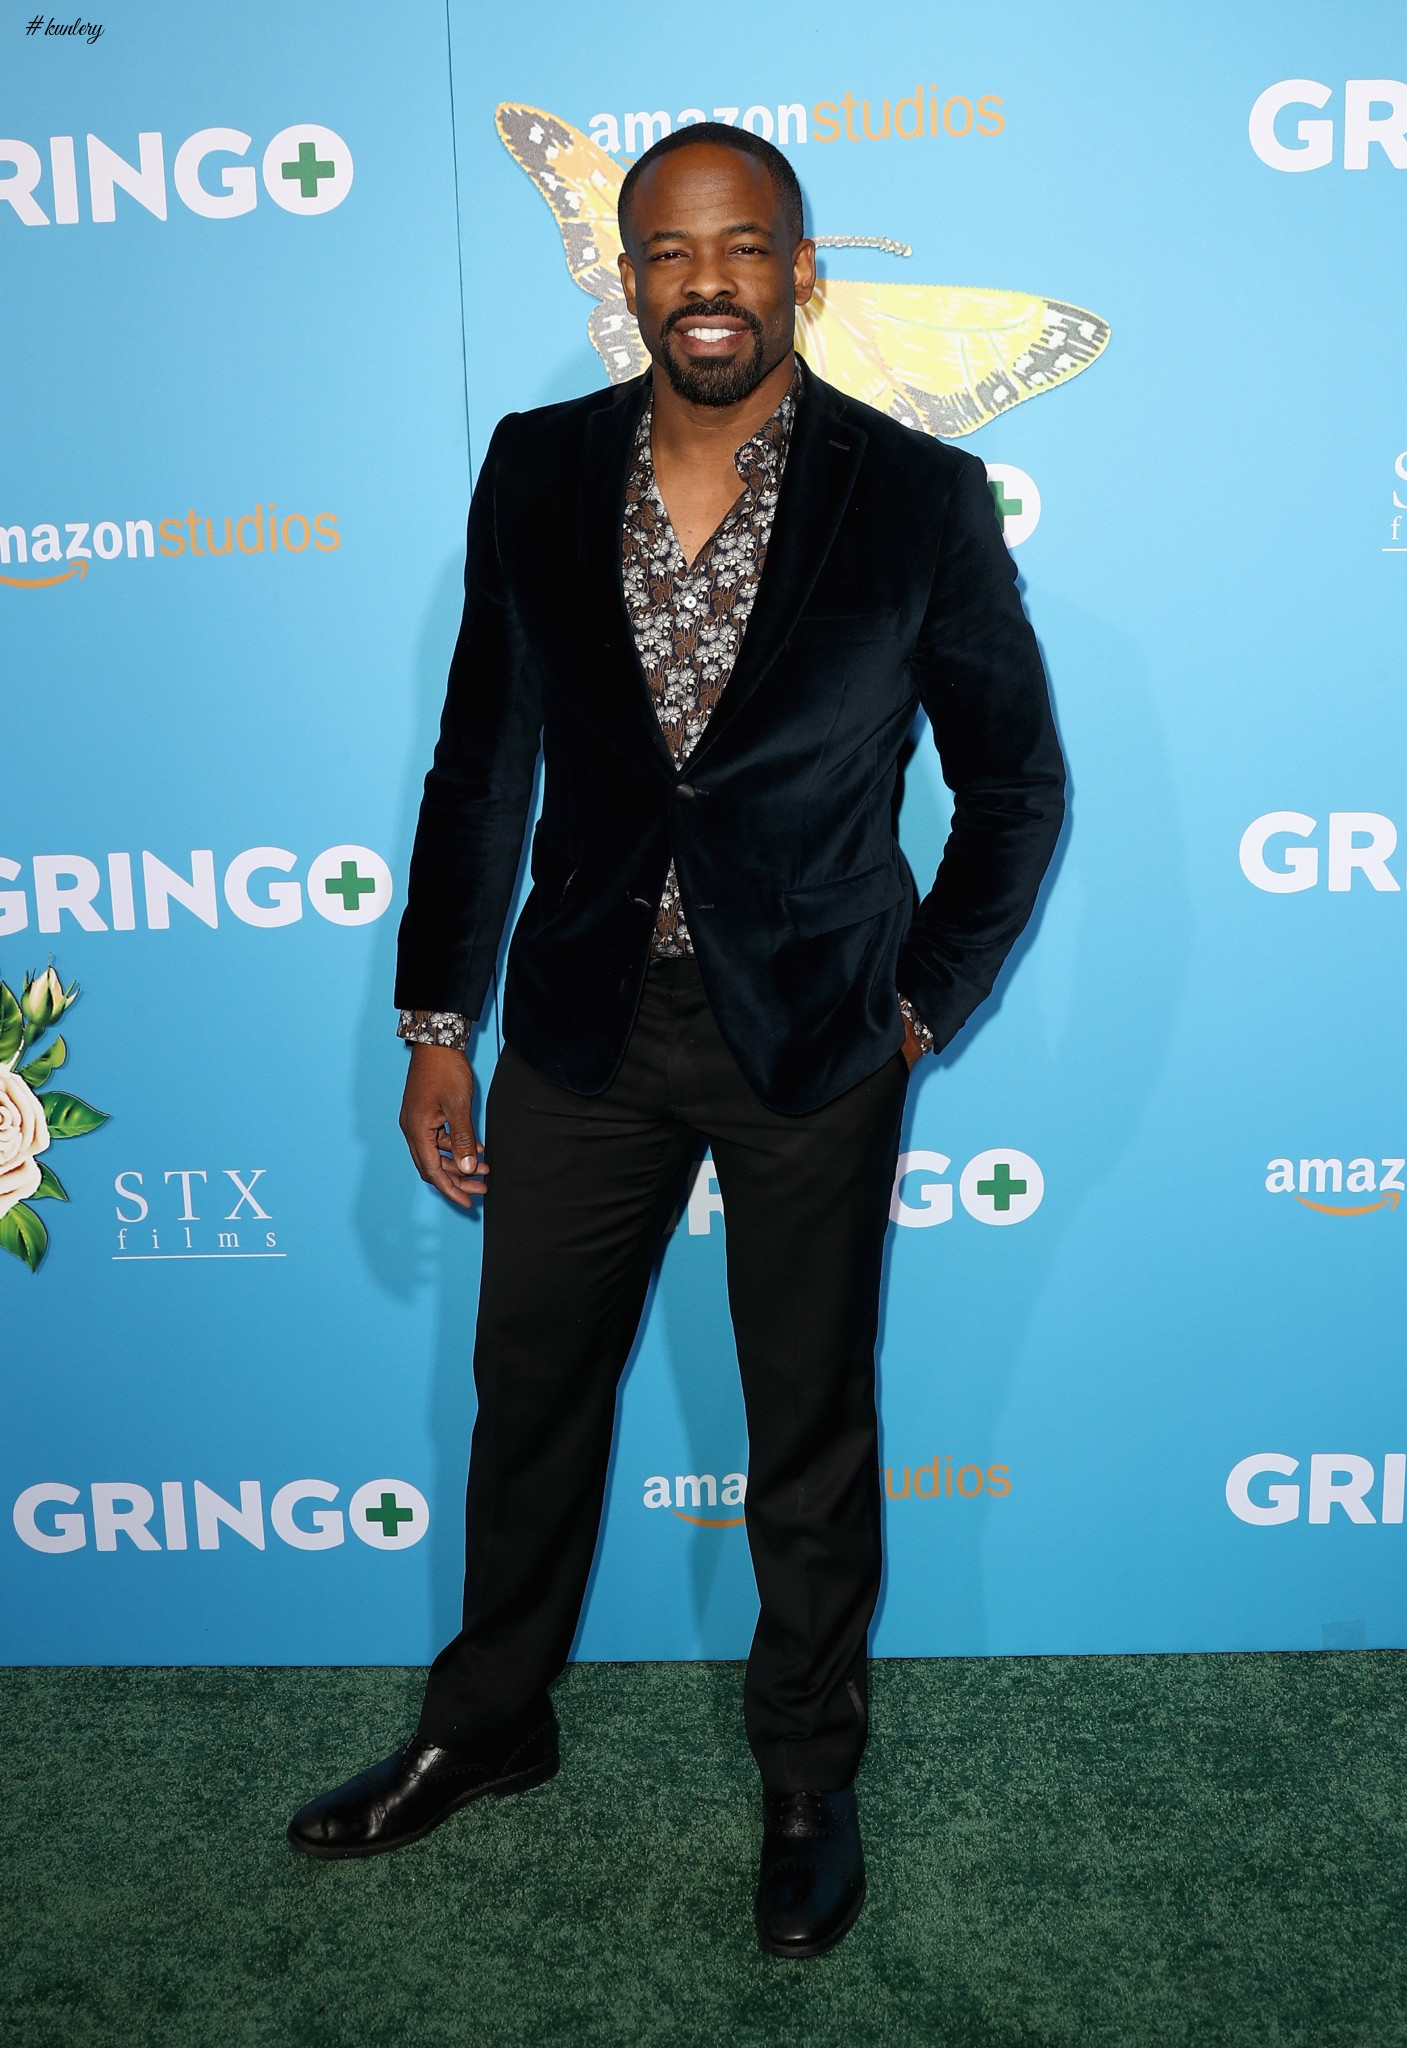 On Tuesday night, Hollywood film Gringo had its world premiere at the Regal LA Live Stadium 14 in Los Angeles.  The premiere had the cast of film David Oyelowo, Charlize Theron, Amanda Seyfried along with celebrities such as